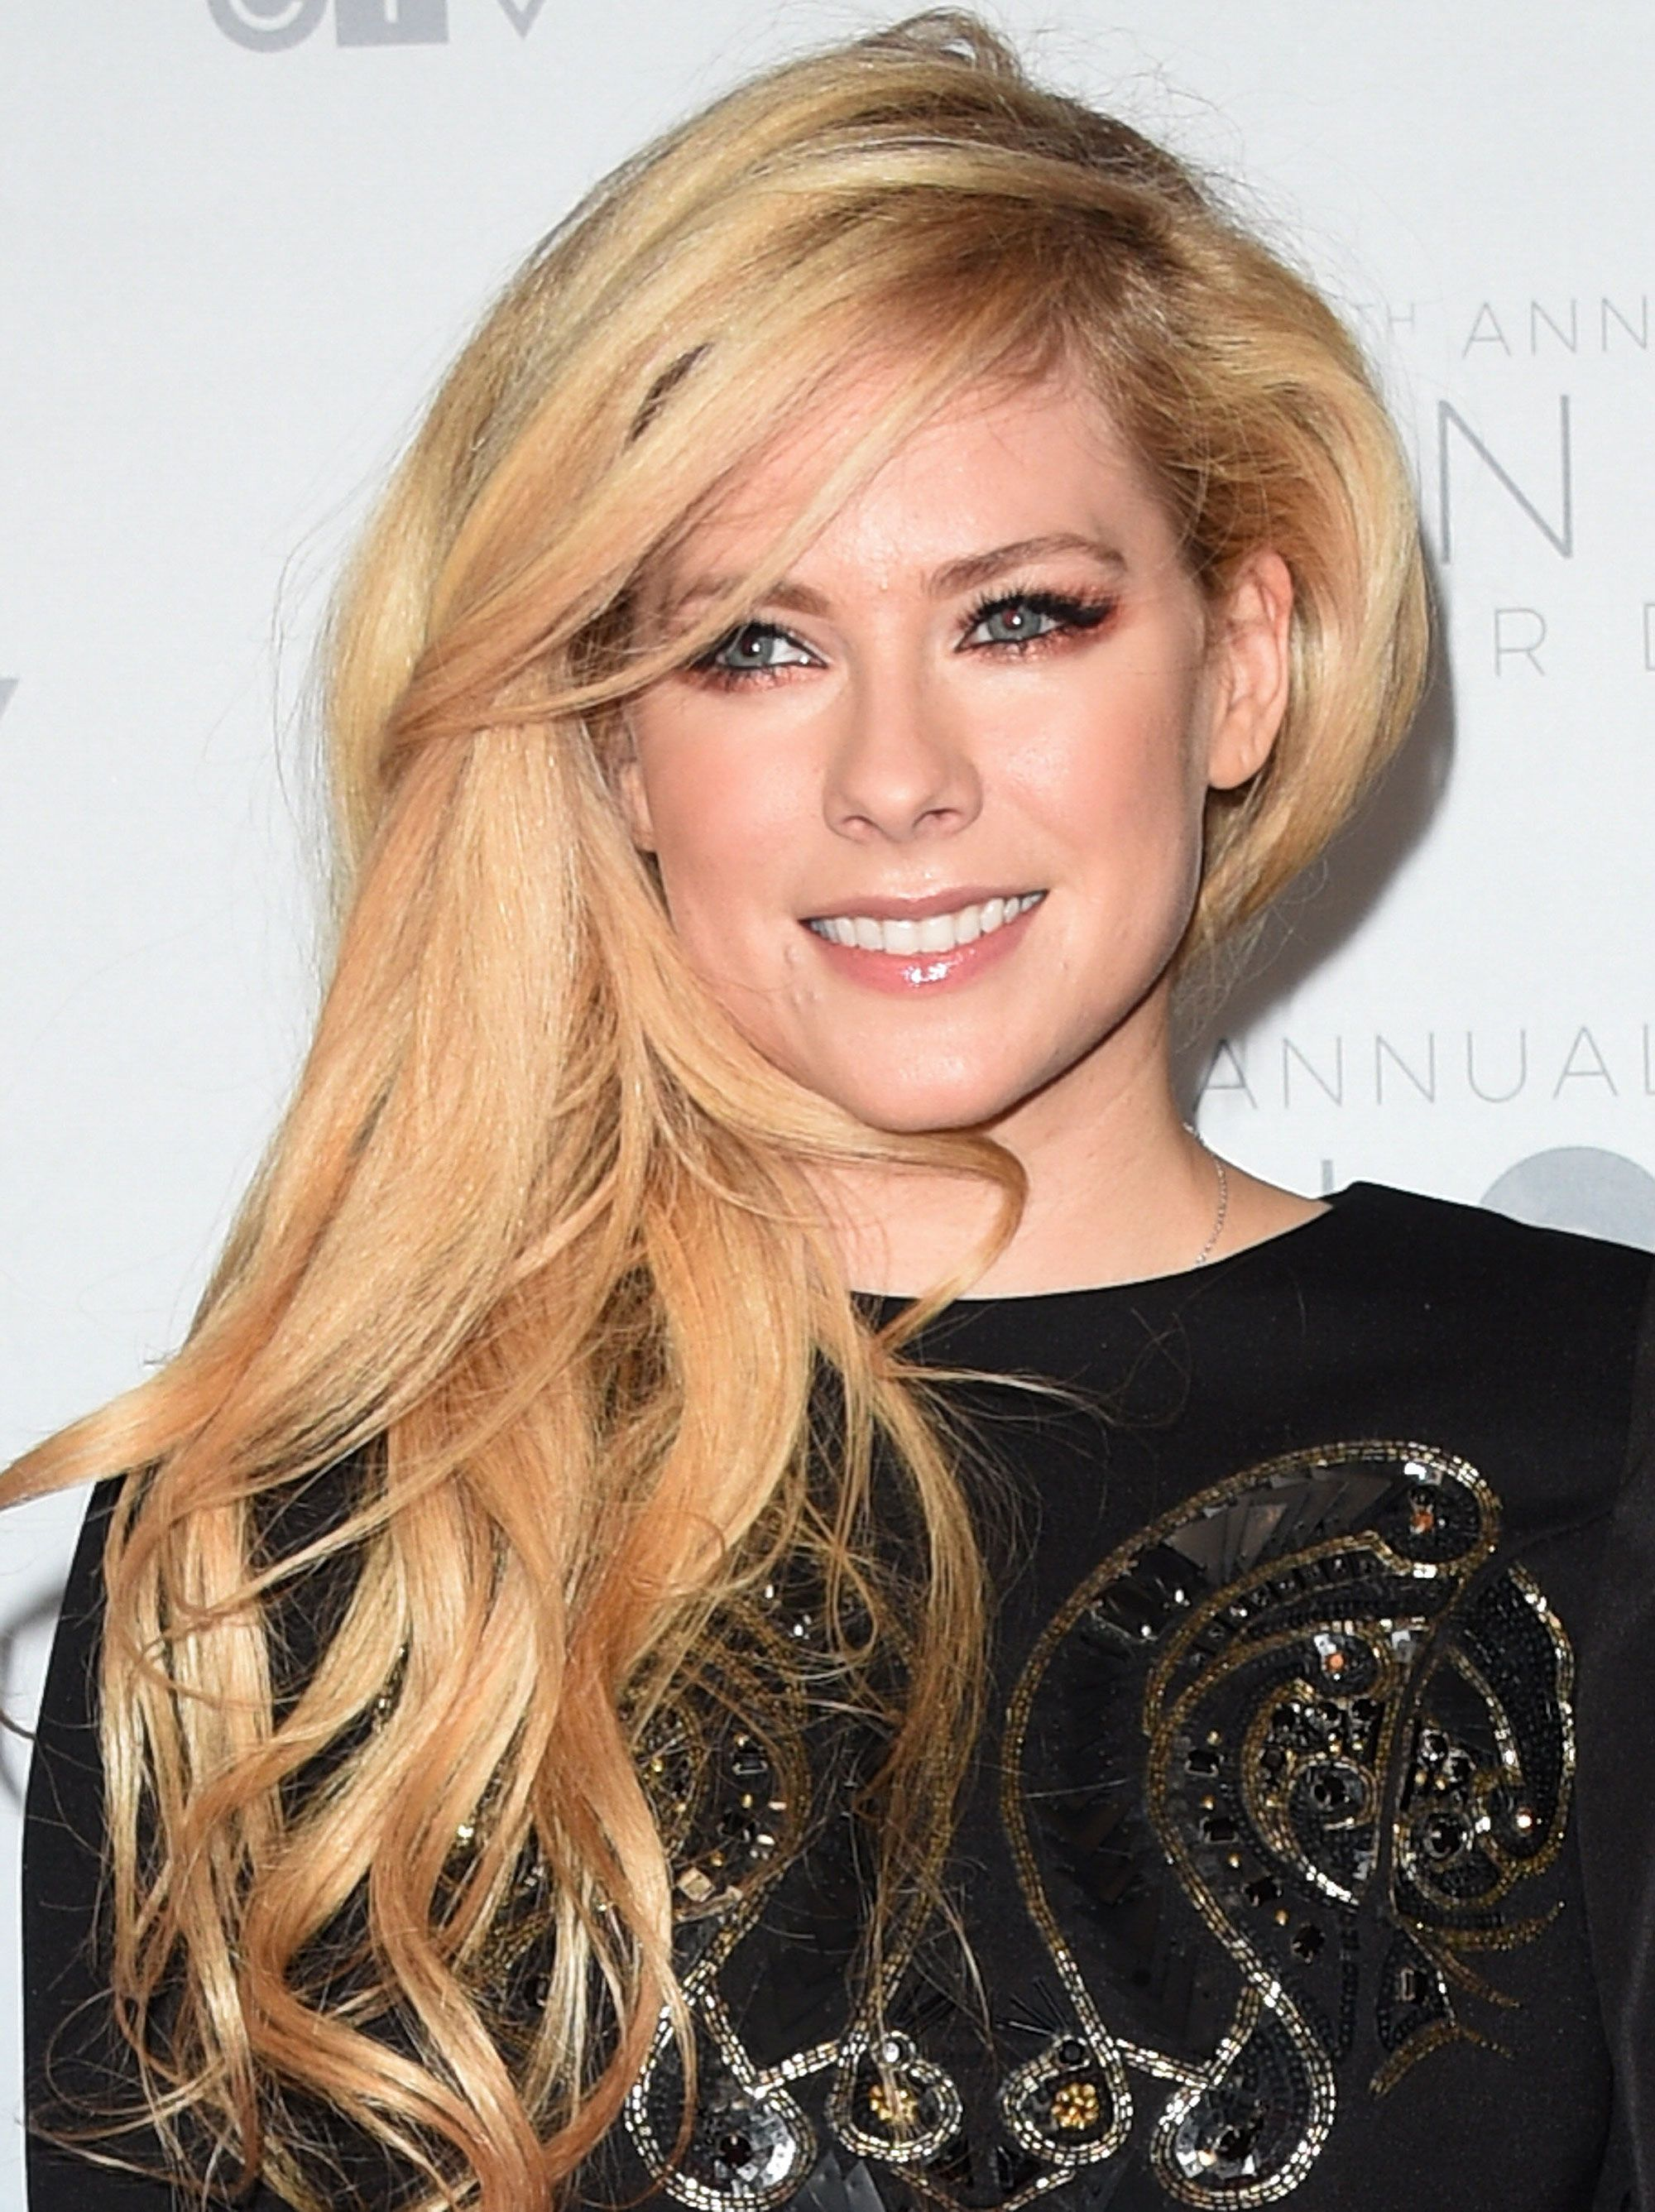 Avril Lavigne Says Its Been a Long Recovery as She Announces New Album Is in the Works